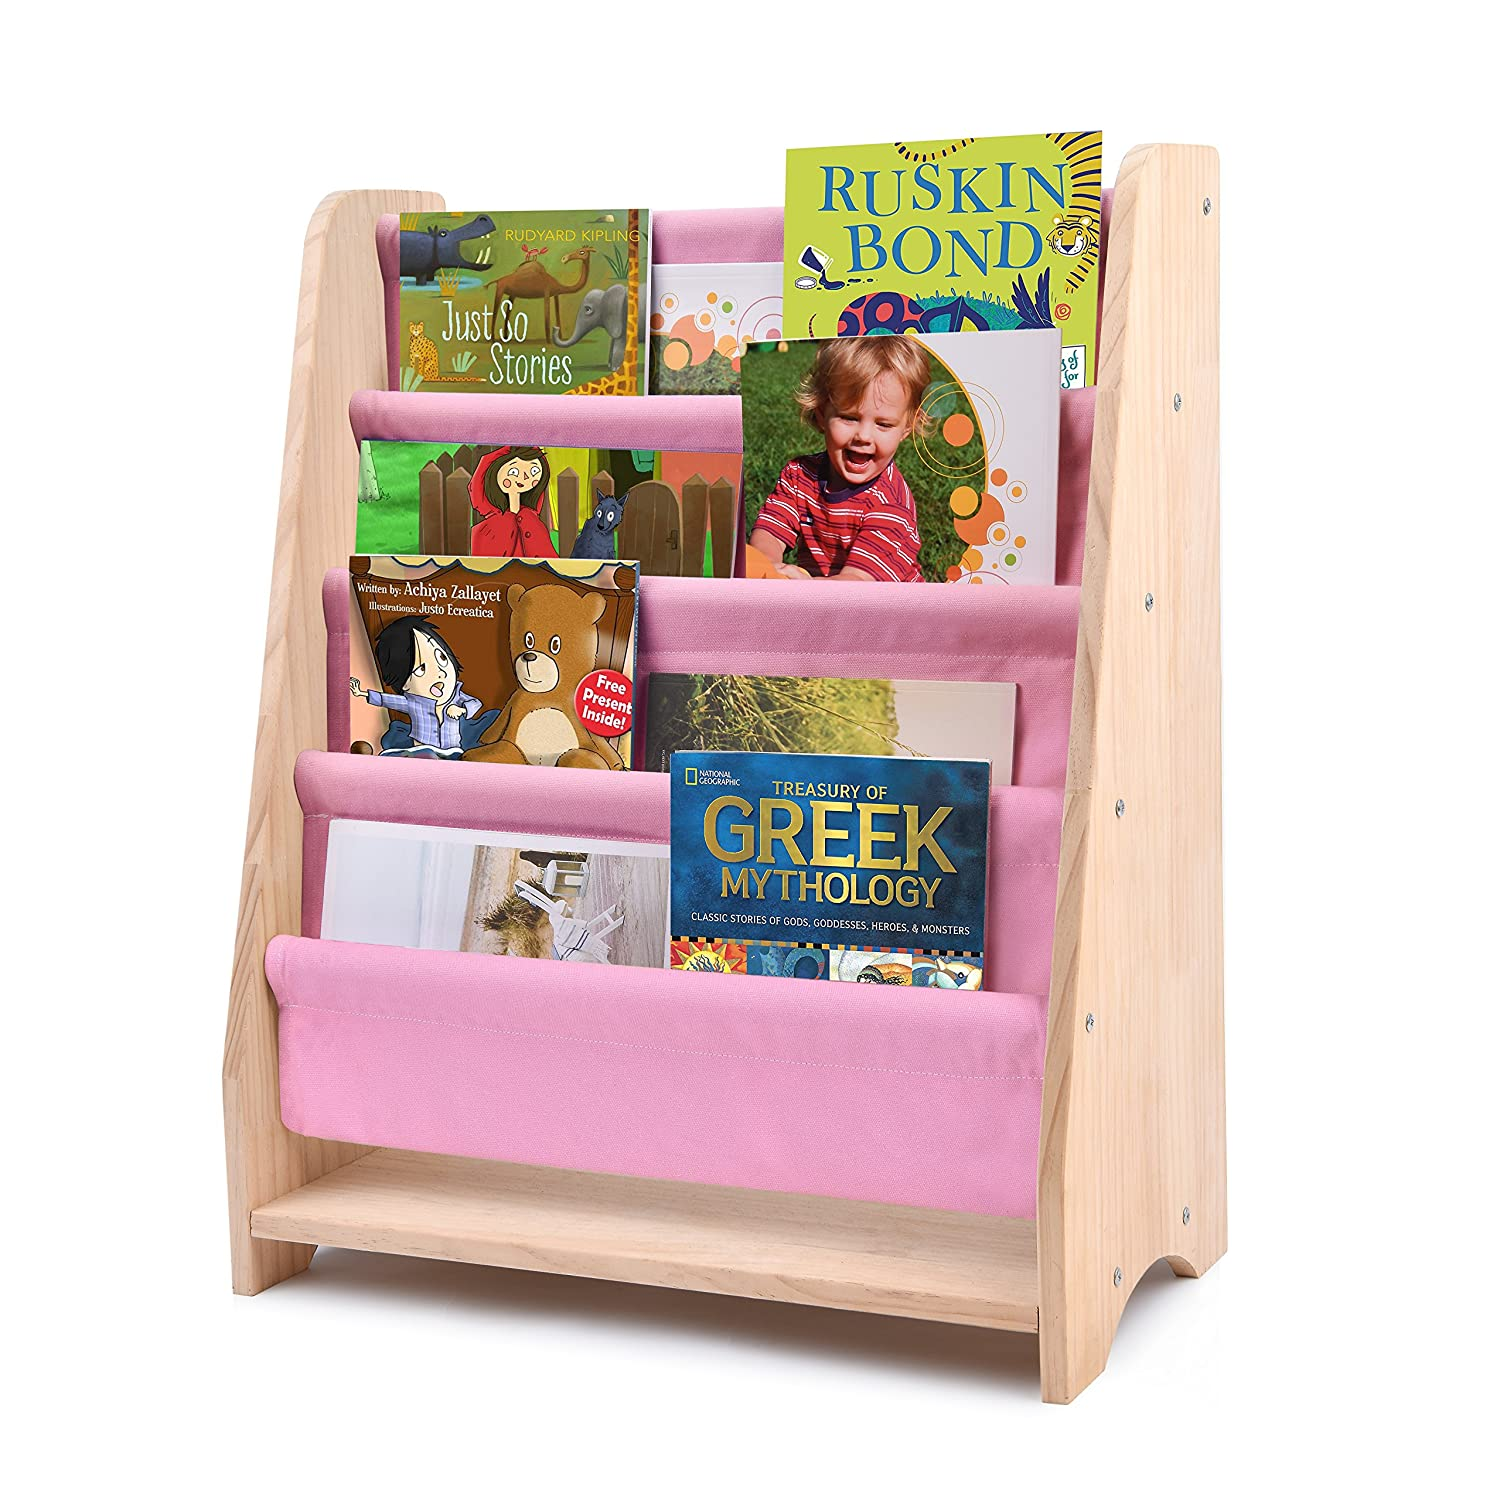 Kids Sling Bookcase, Safe& Care Children's Wooden Rack Storage Bookshelf Features Suitable Height for Toddler with 4 Canvas Shelves Perfect for Protecting Books (Natural) MX-TRADE